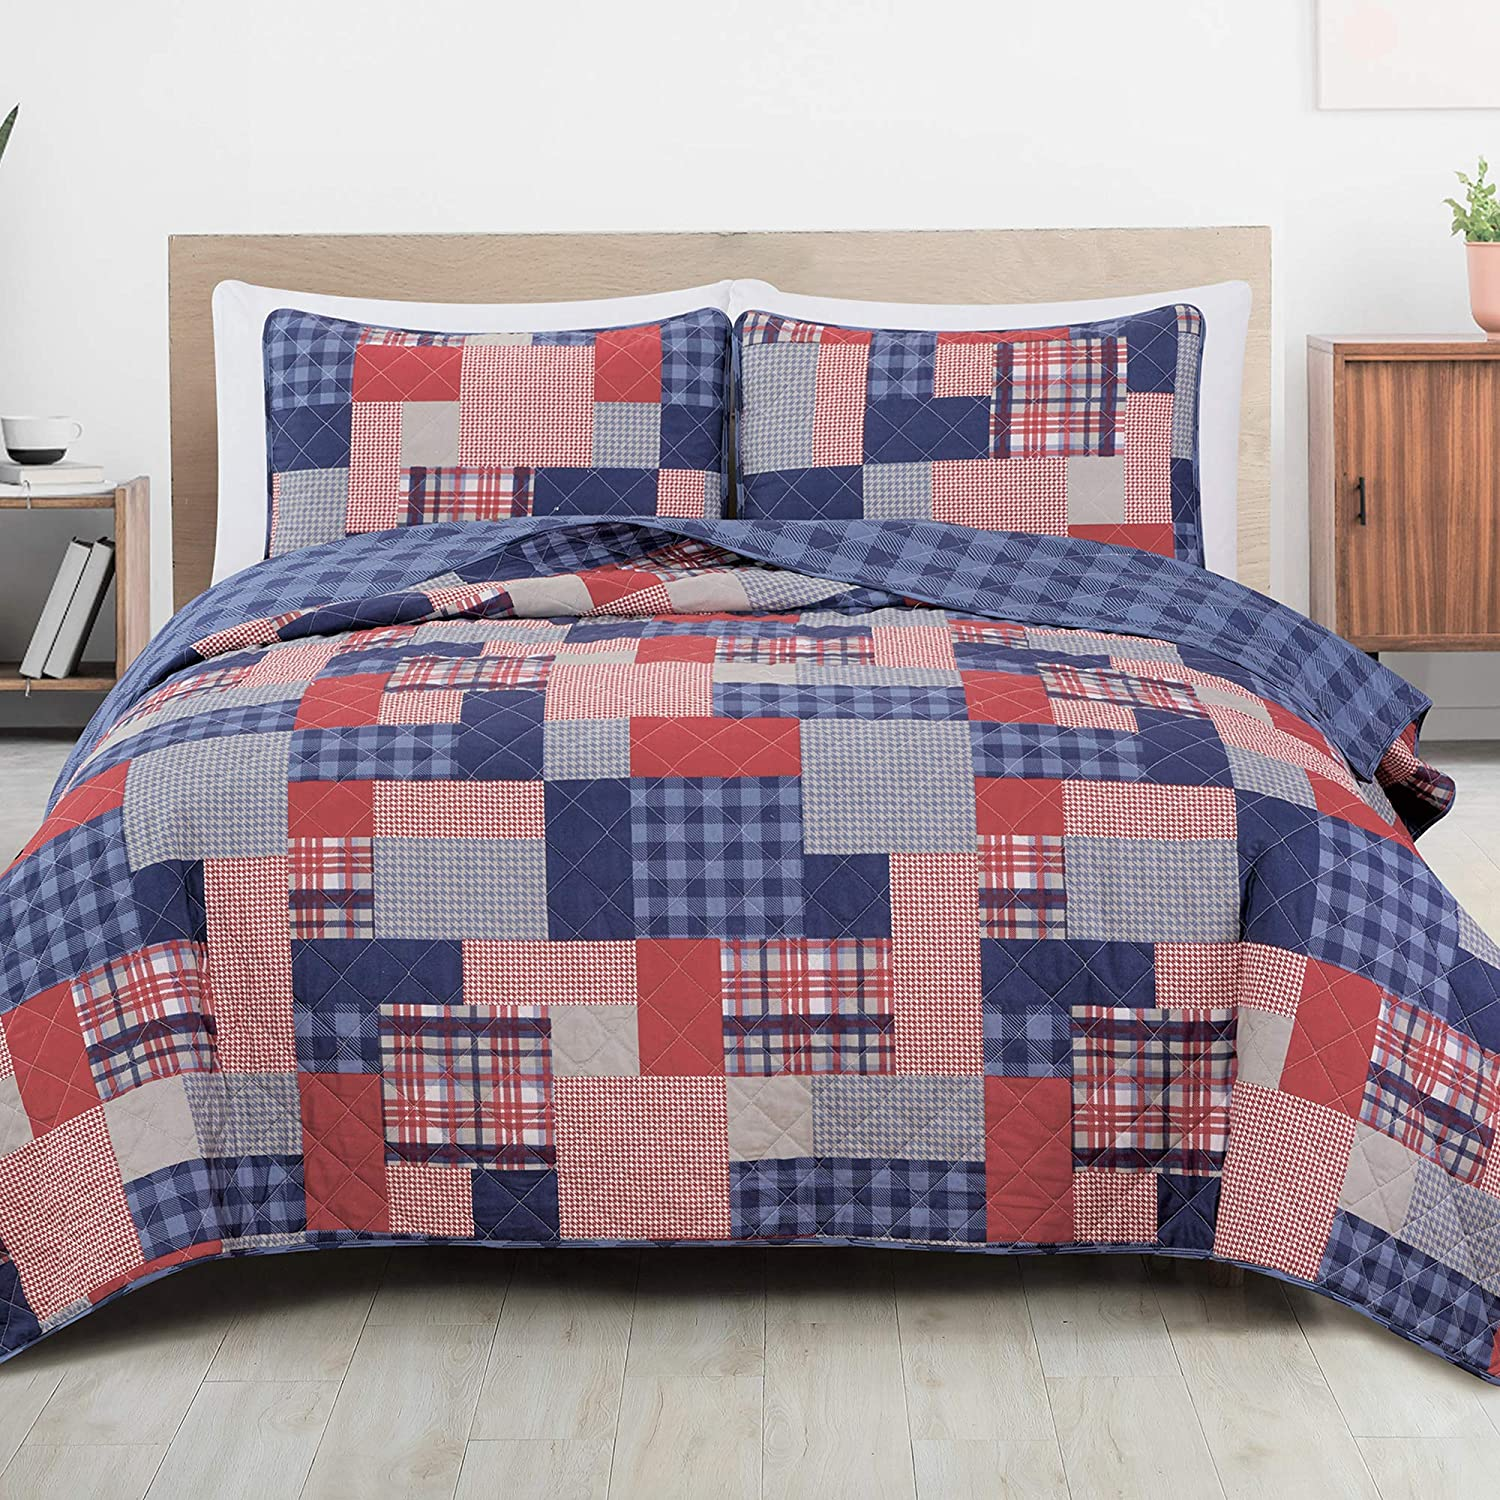 Great Bay Home 3-Piece Reversible Quilt Set with Shams. All-Season Bedspread with Plaid Patchwork Pattern. Spencer Collection (Full/Queen)